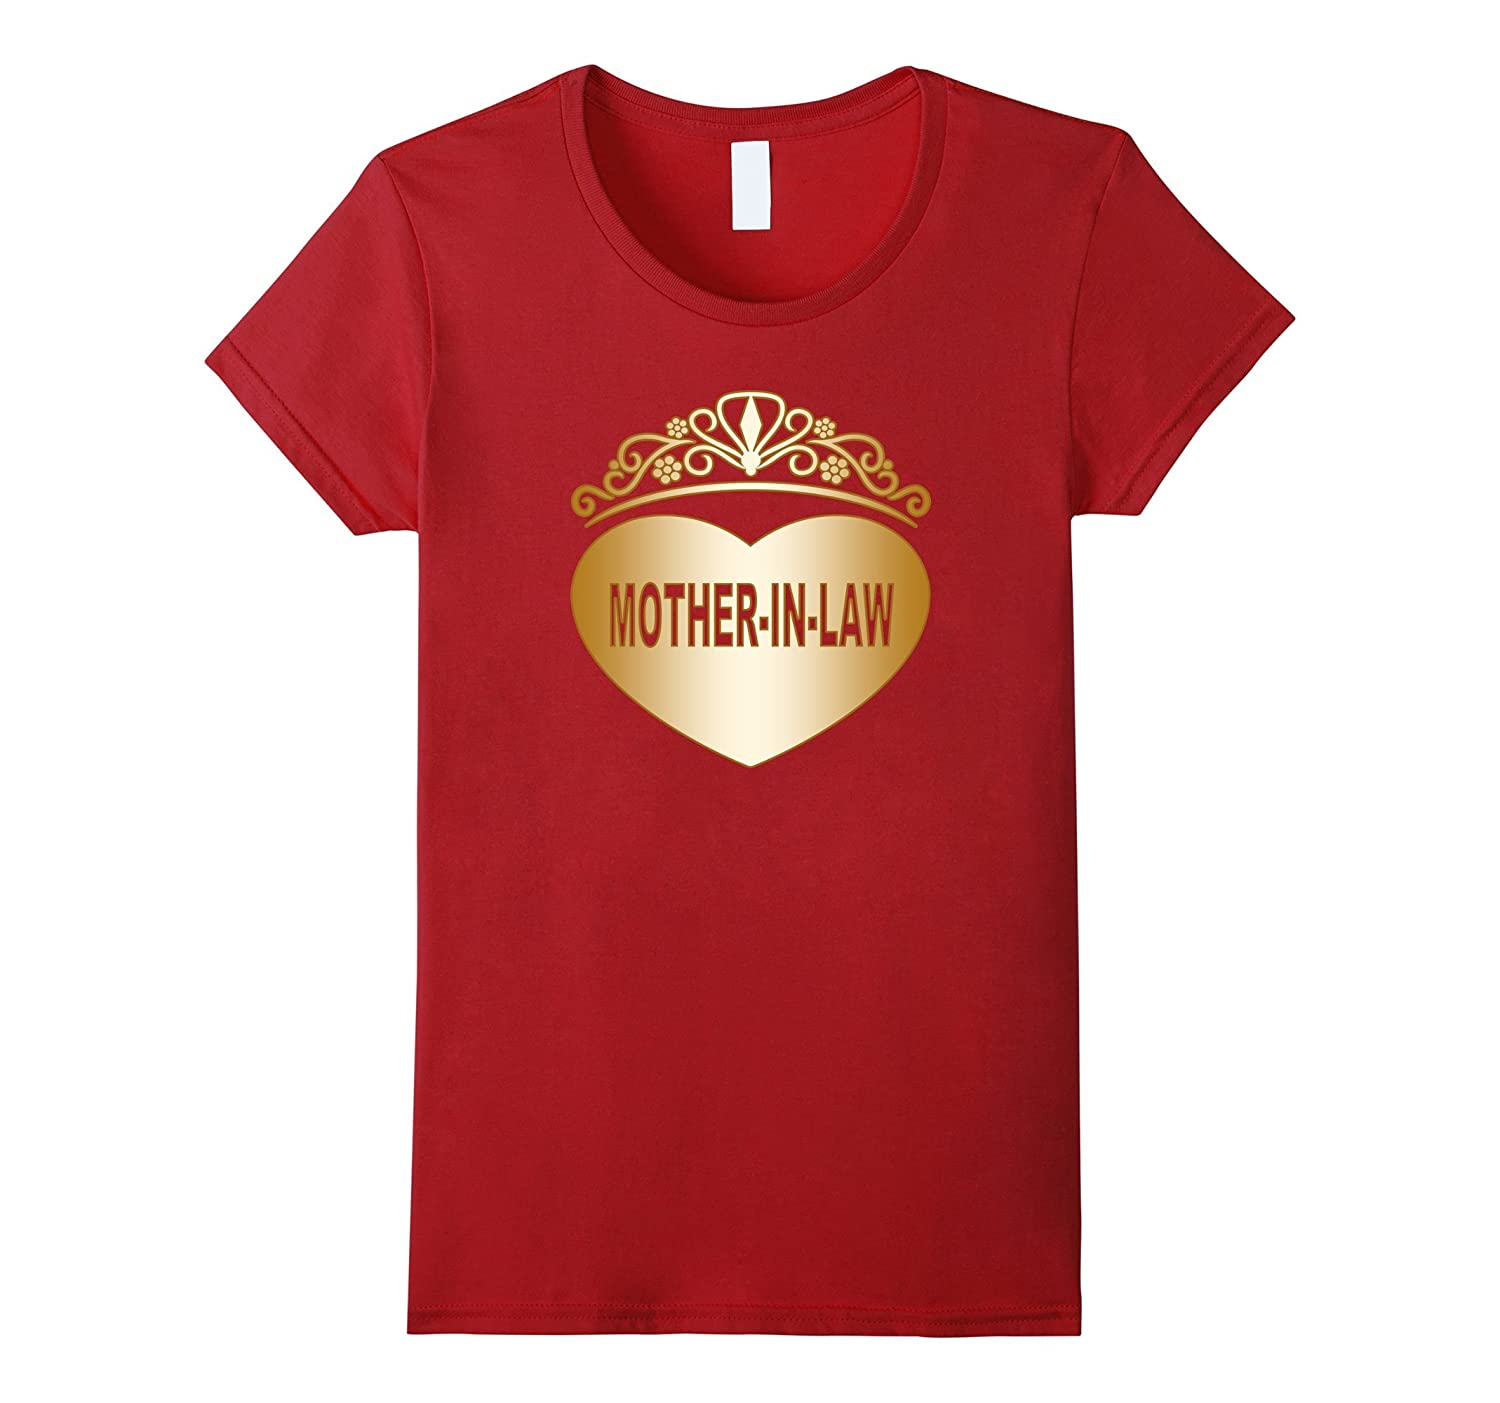 Best Tee-Shirt Gift for Mother-In-Law from Son or Daughter